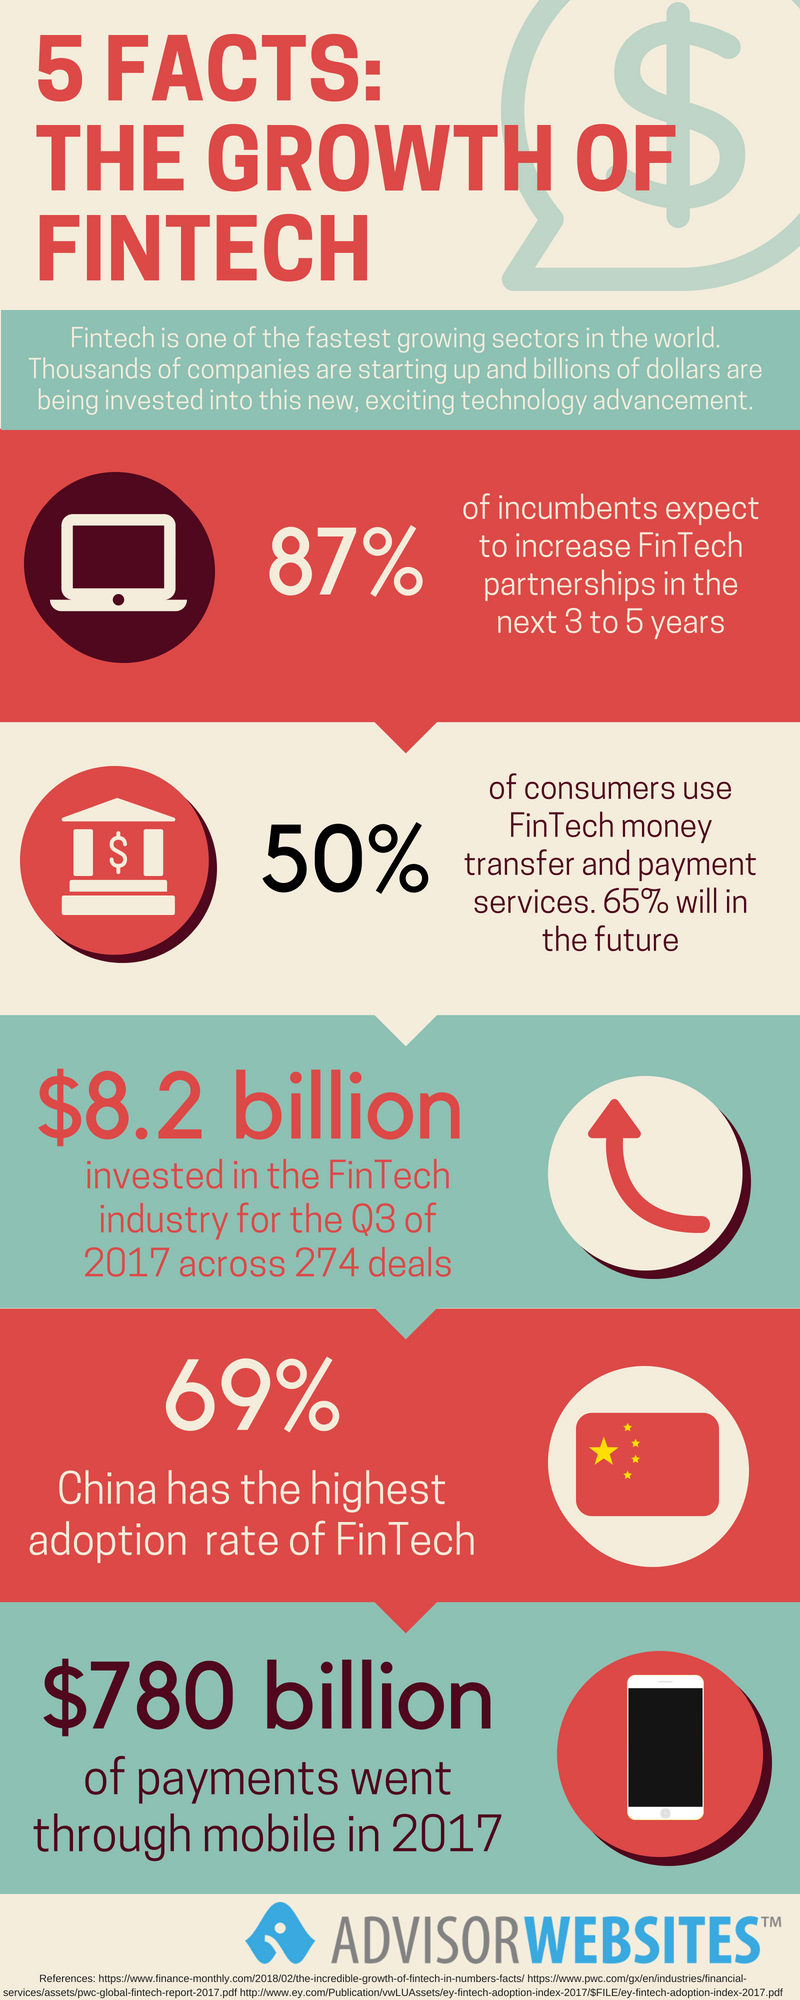 The growth of fintech